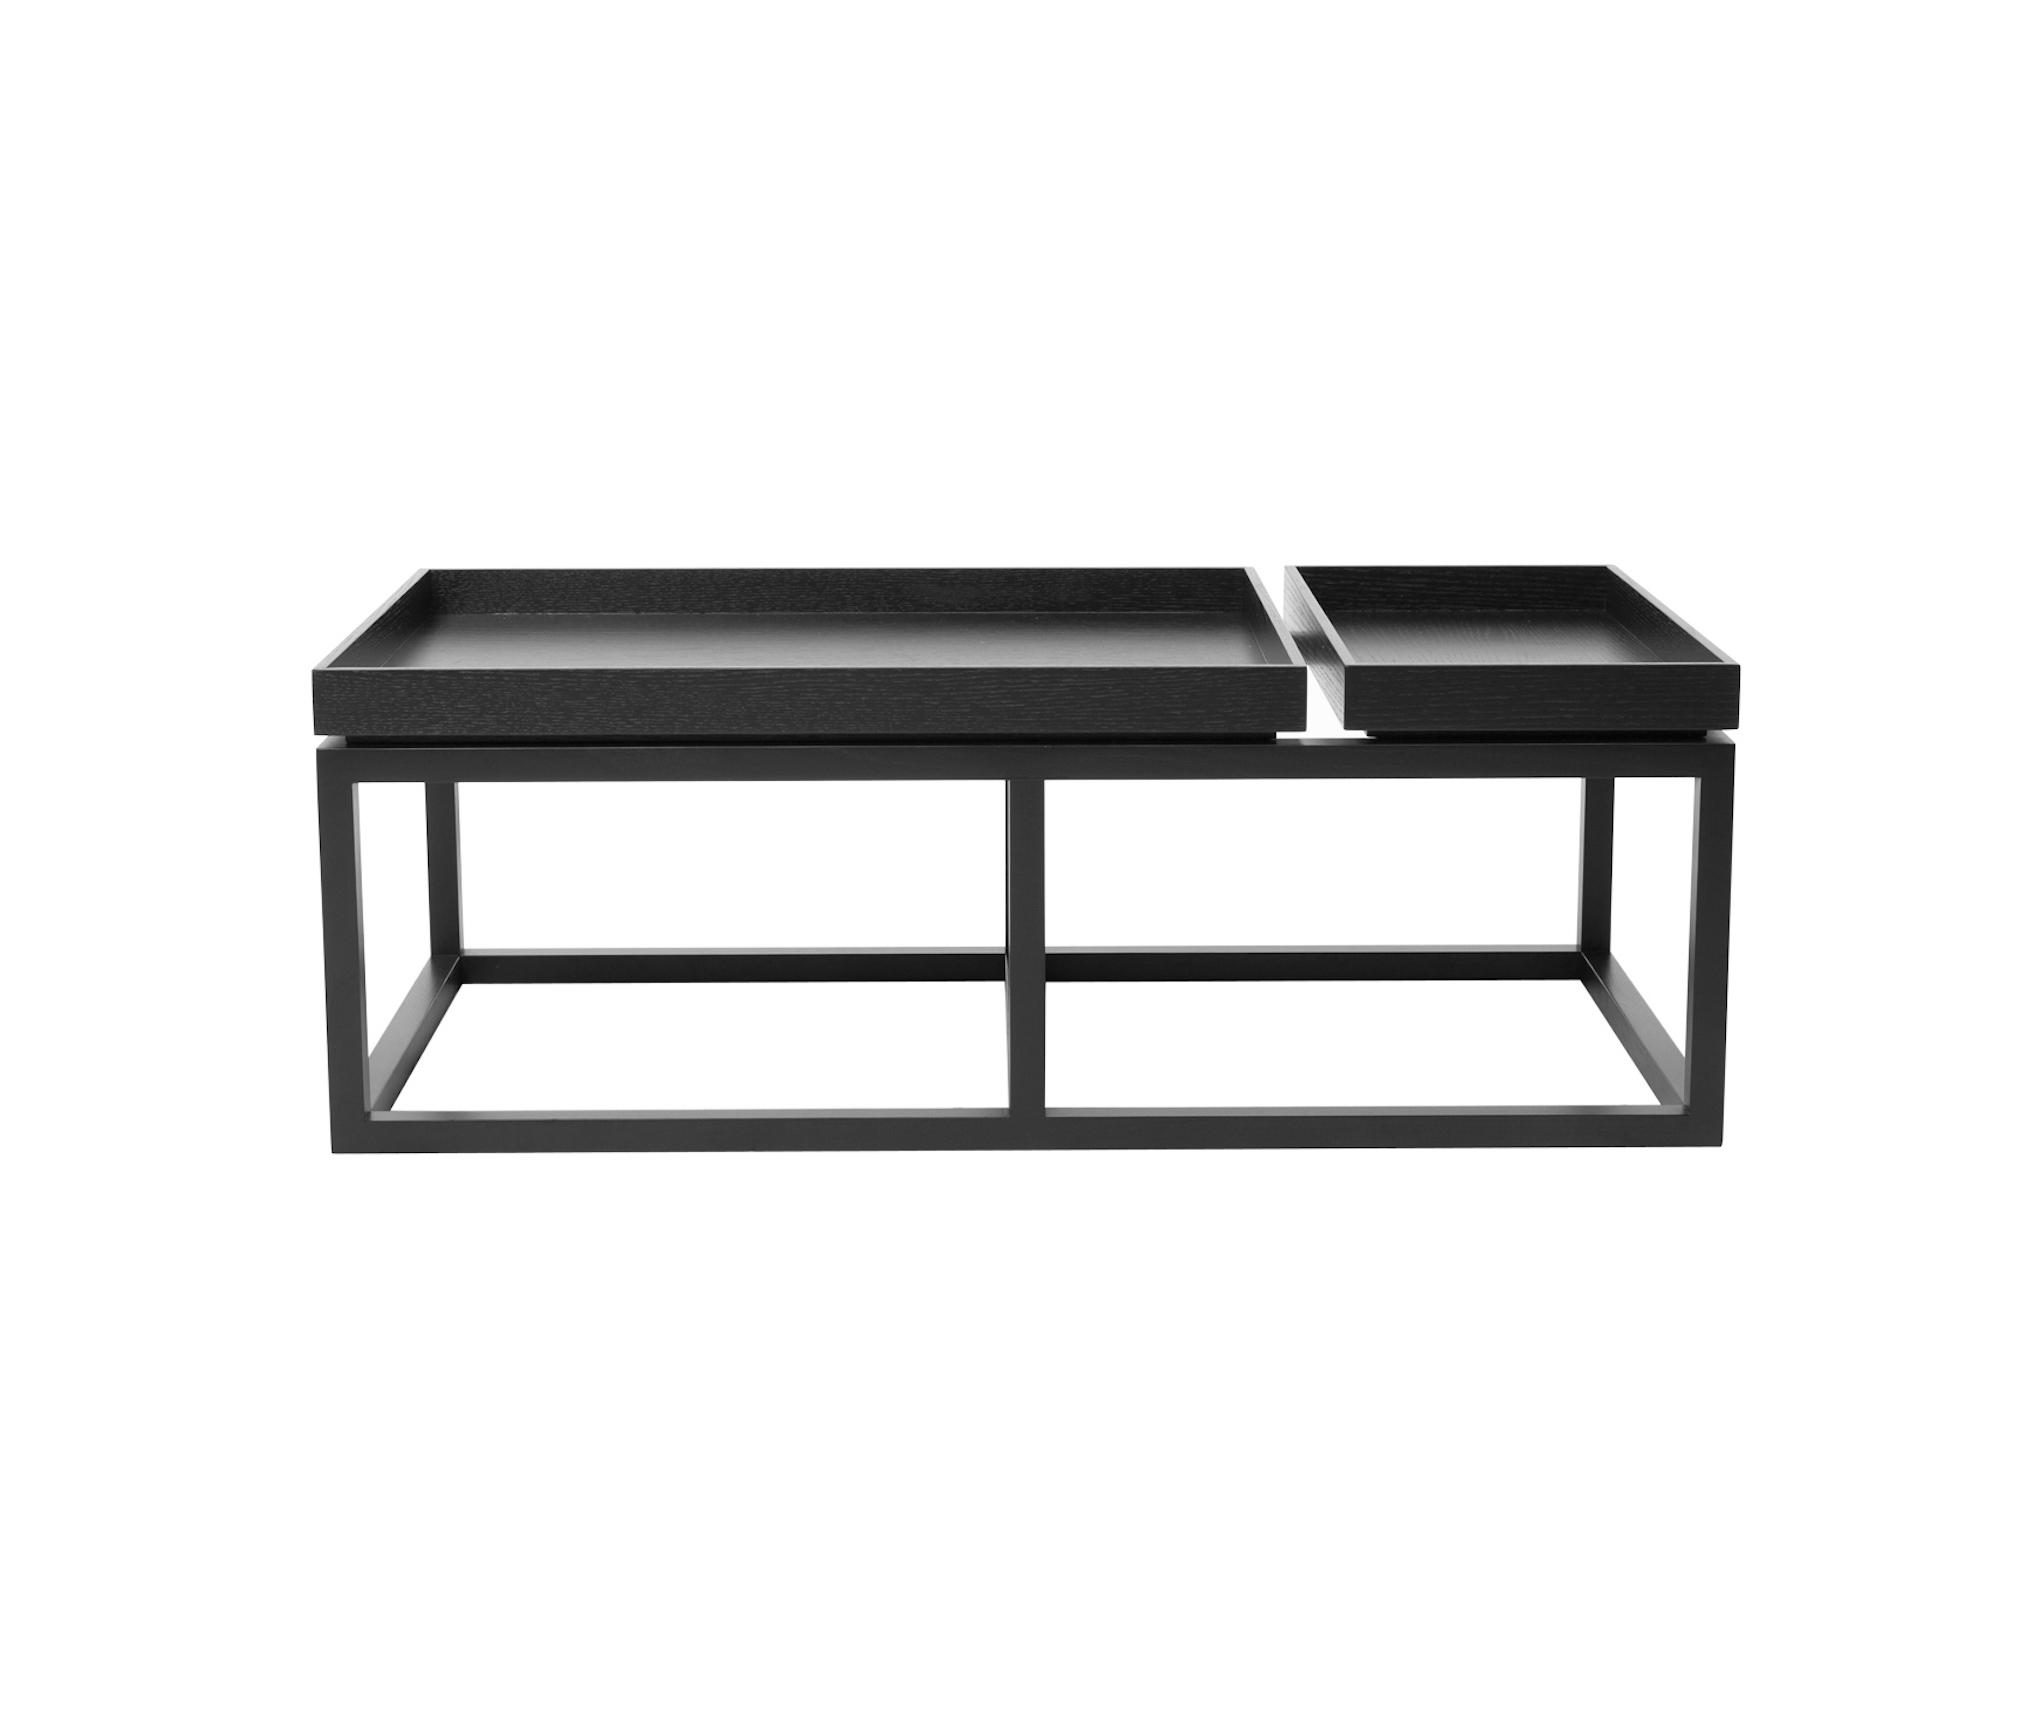 COFFEE TABLE TRAY BLACK WOOD WALNUT Lounge tables from NORR11